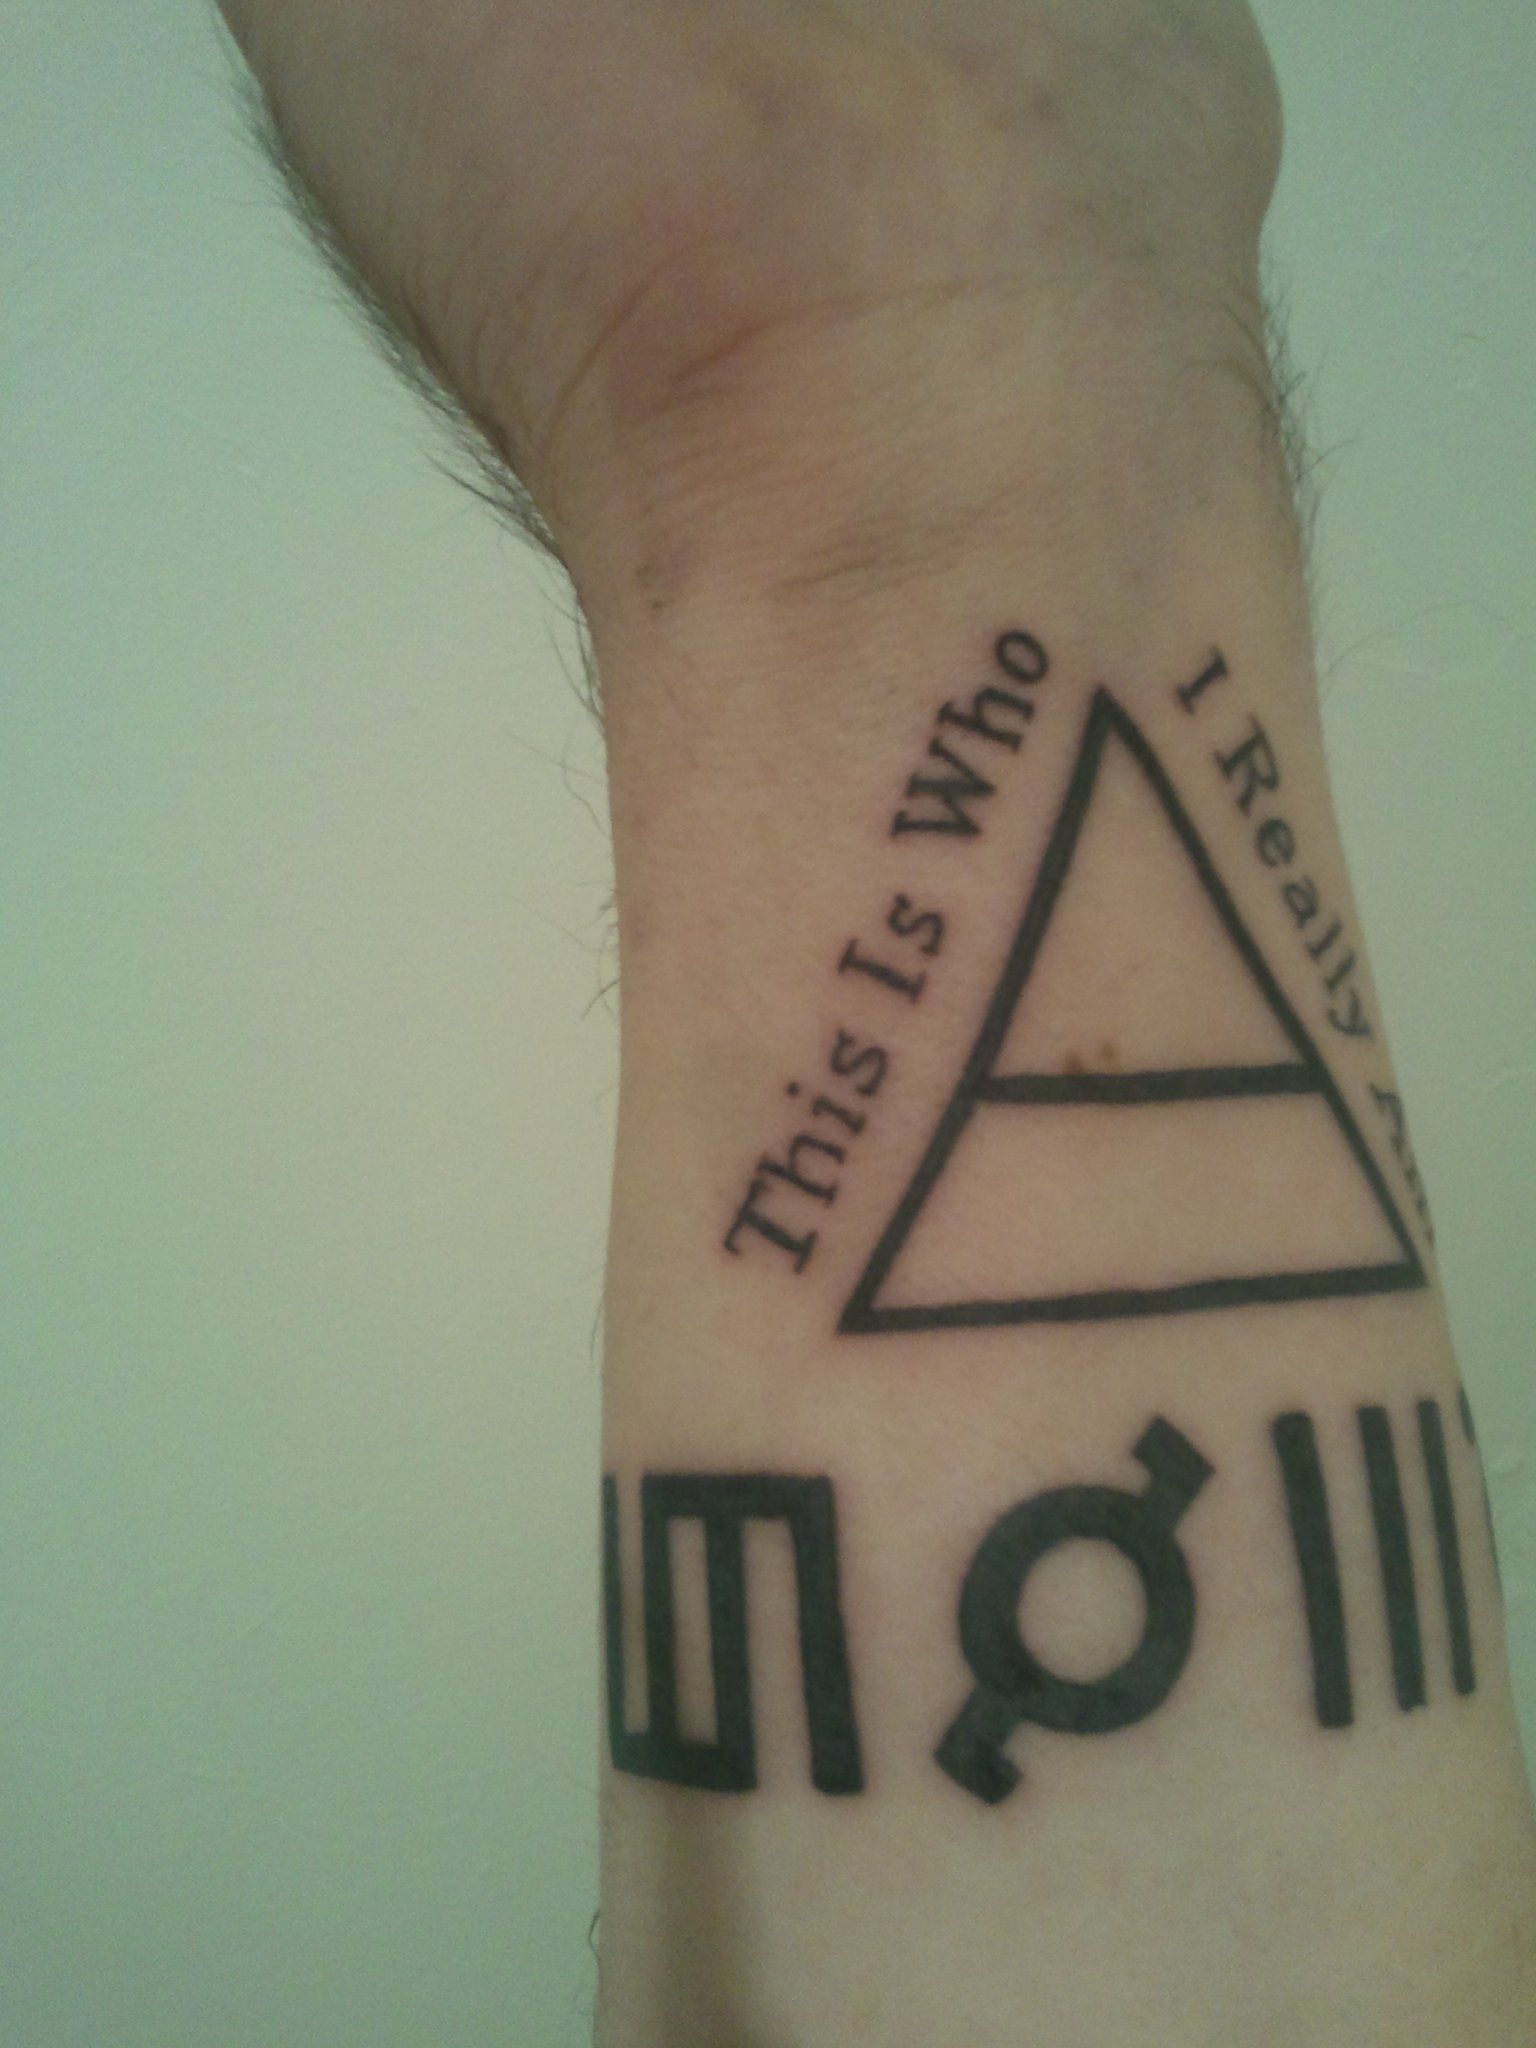 30 seconds to mars – browny soundwave tattoo